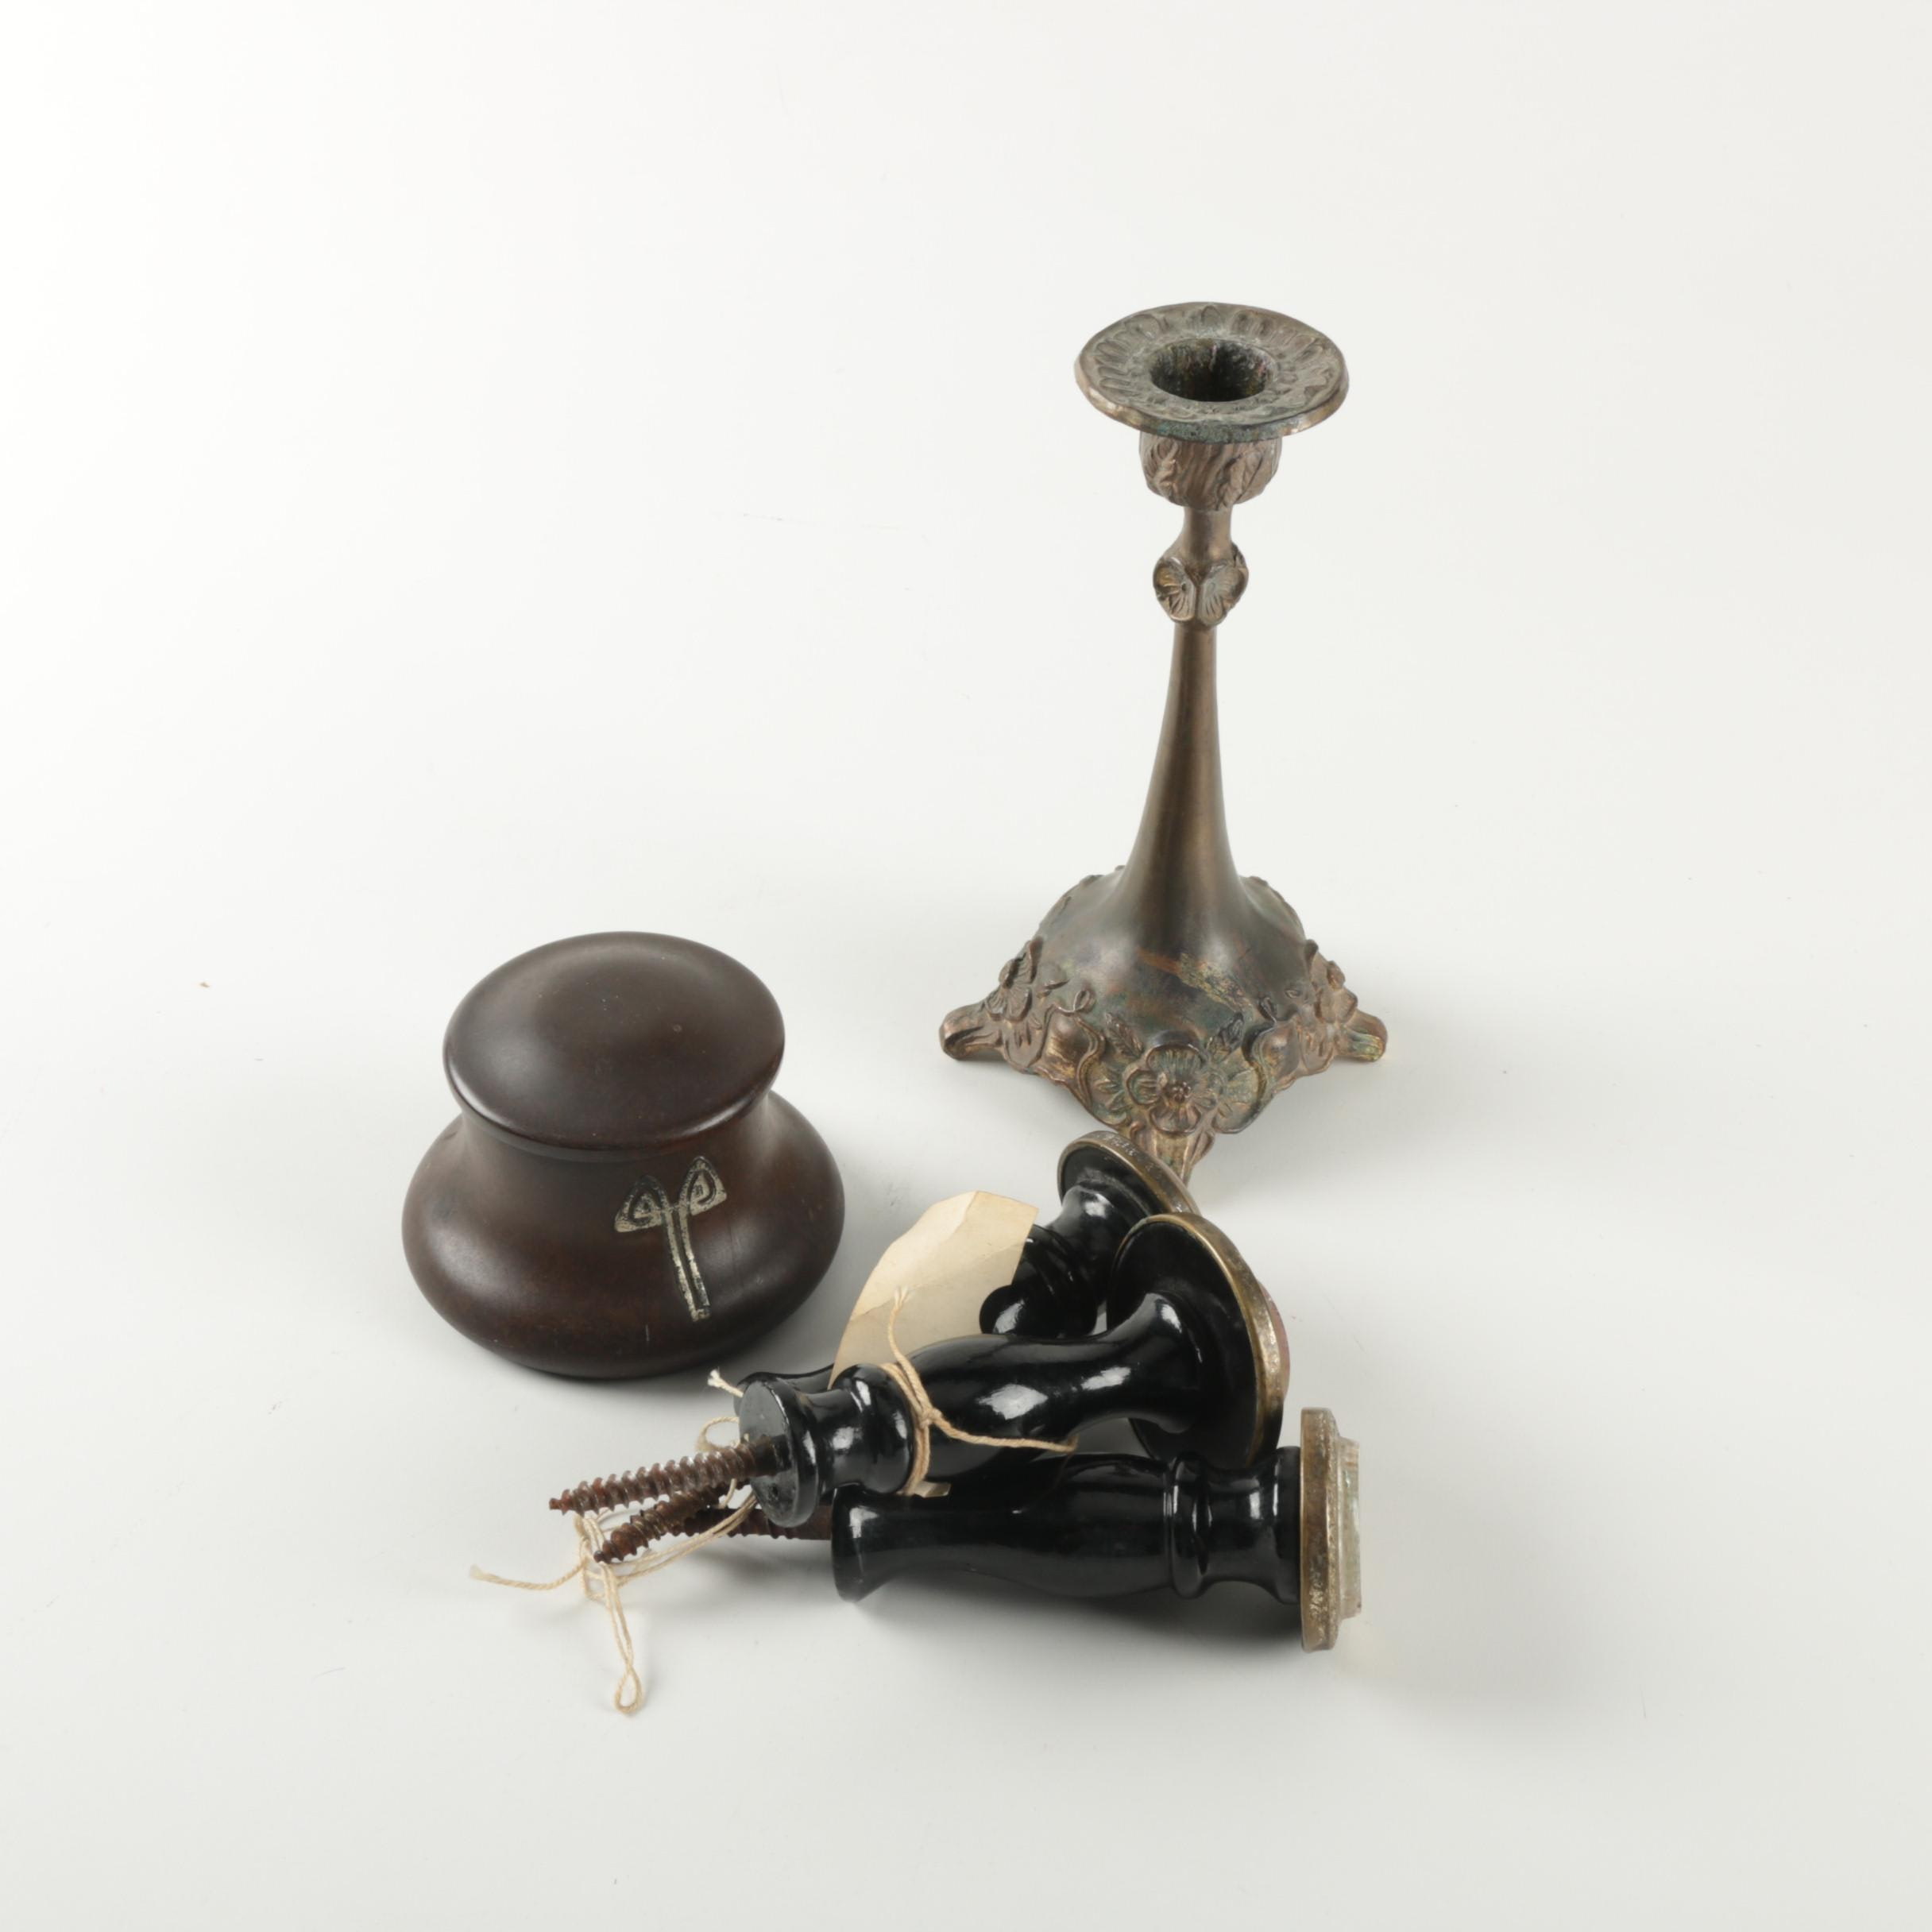 Vintage Doorknobs, Inkwell and Candlestick